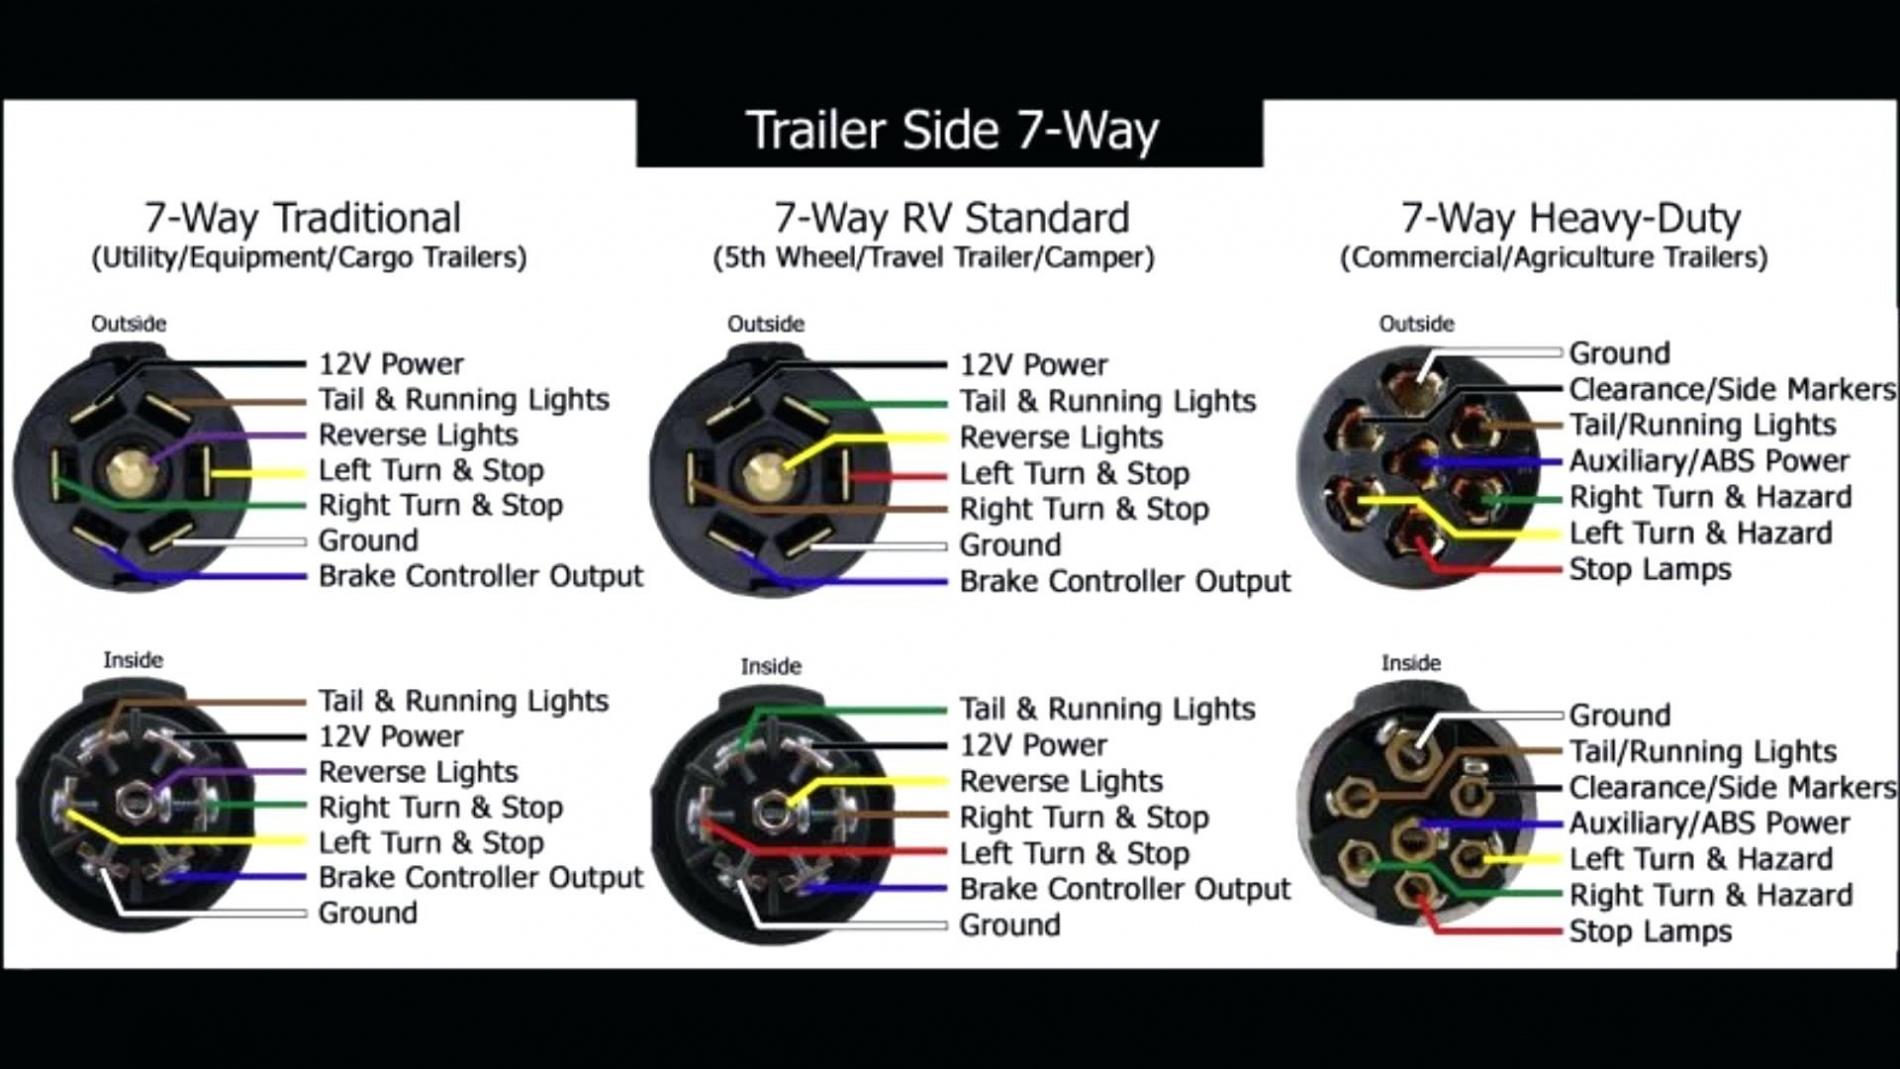 Wiring Diagram Trailer Marker Lights Refrence Cargo Trailer Wiring - Trailer Connector Wiring Diagram